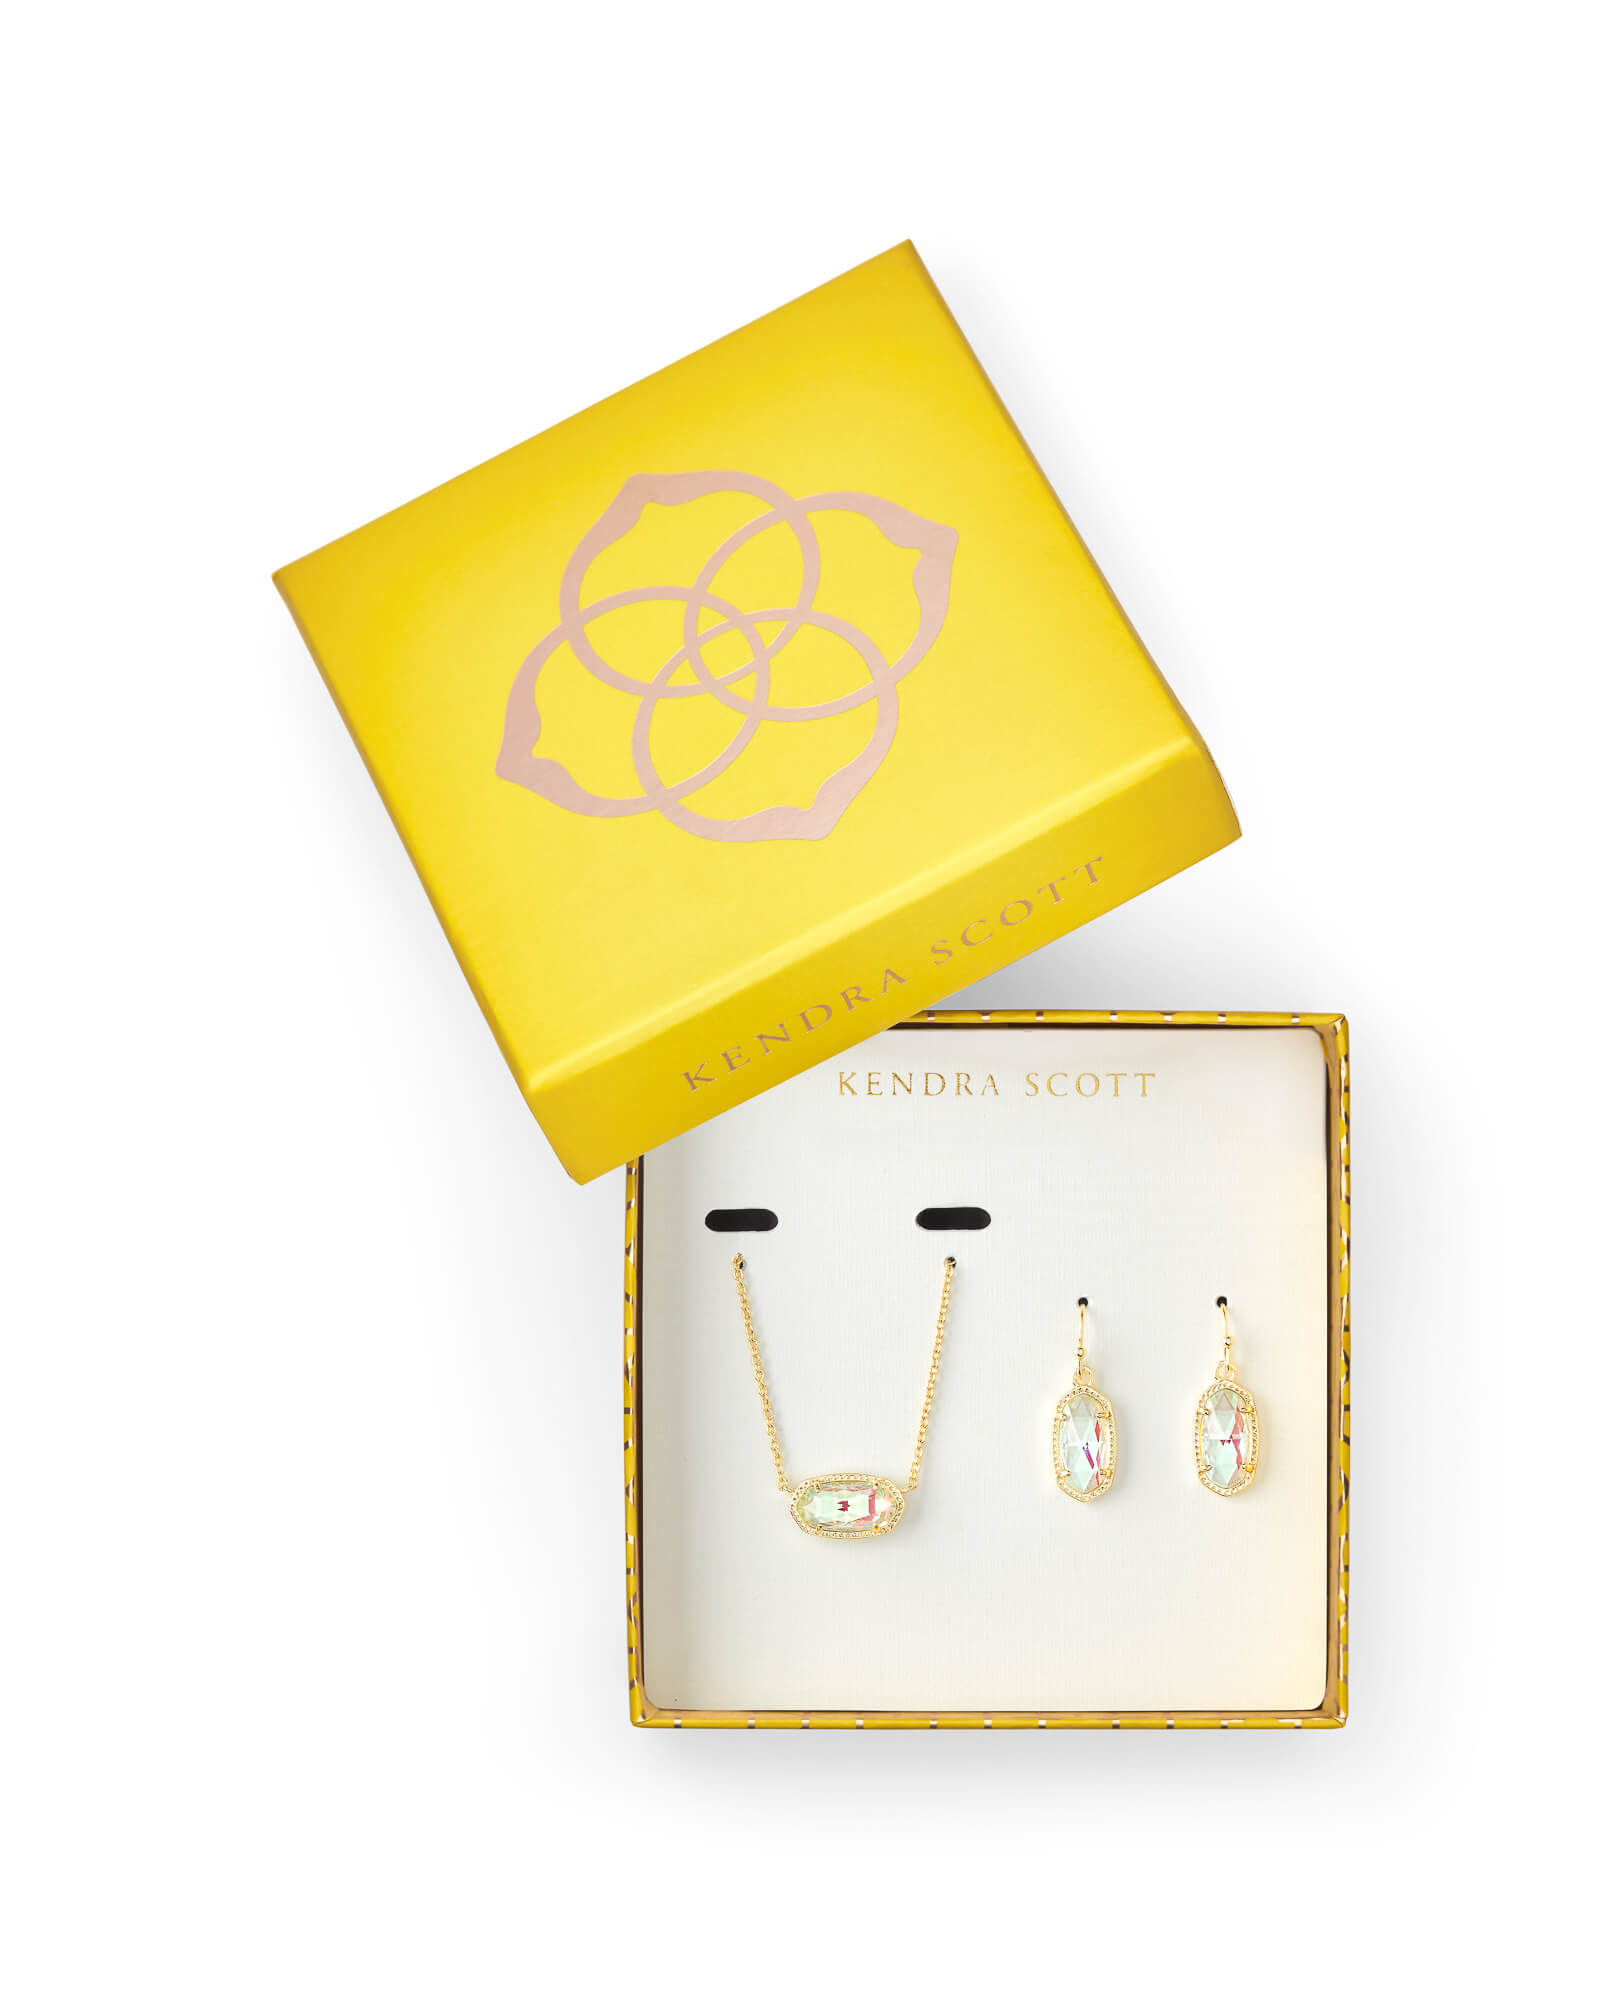 Necklace and earring set in a yellow box